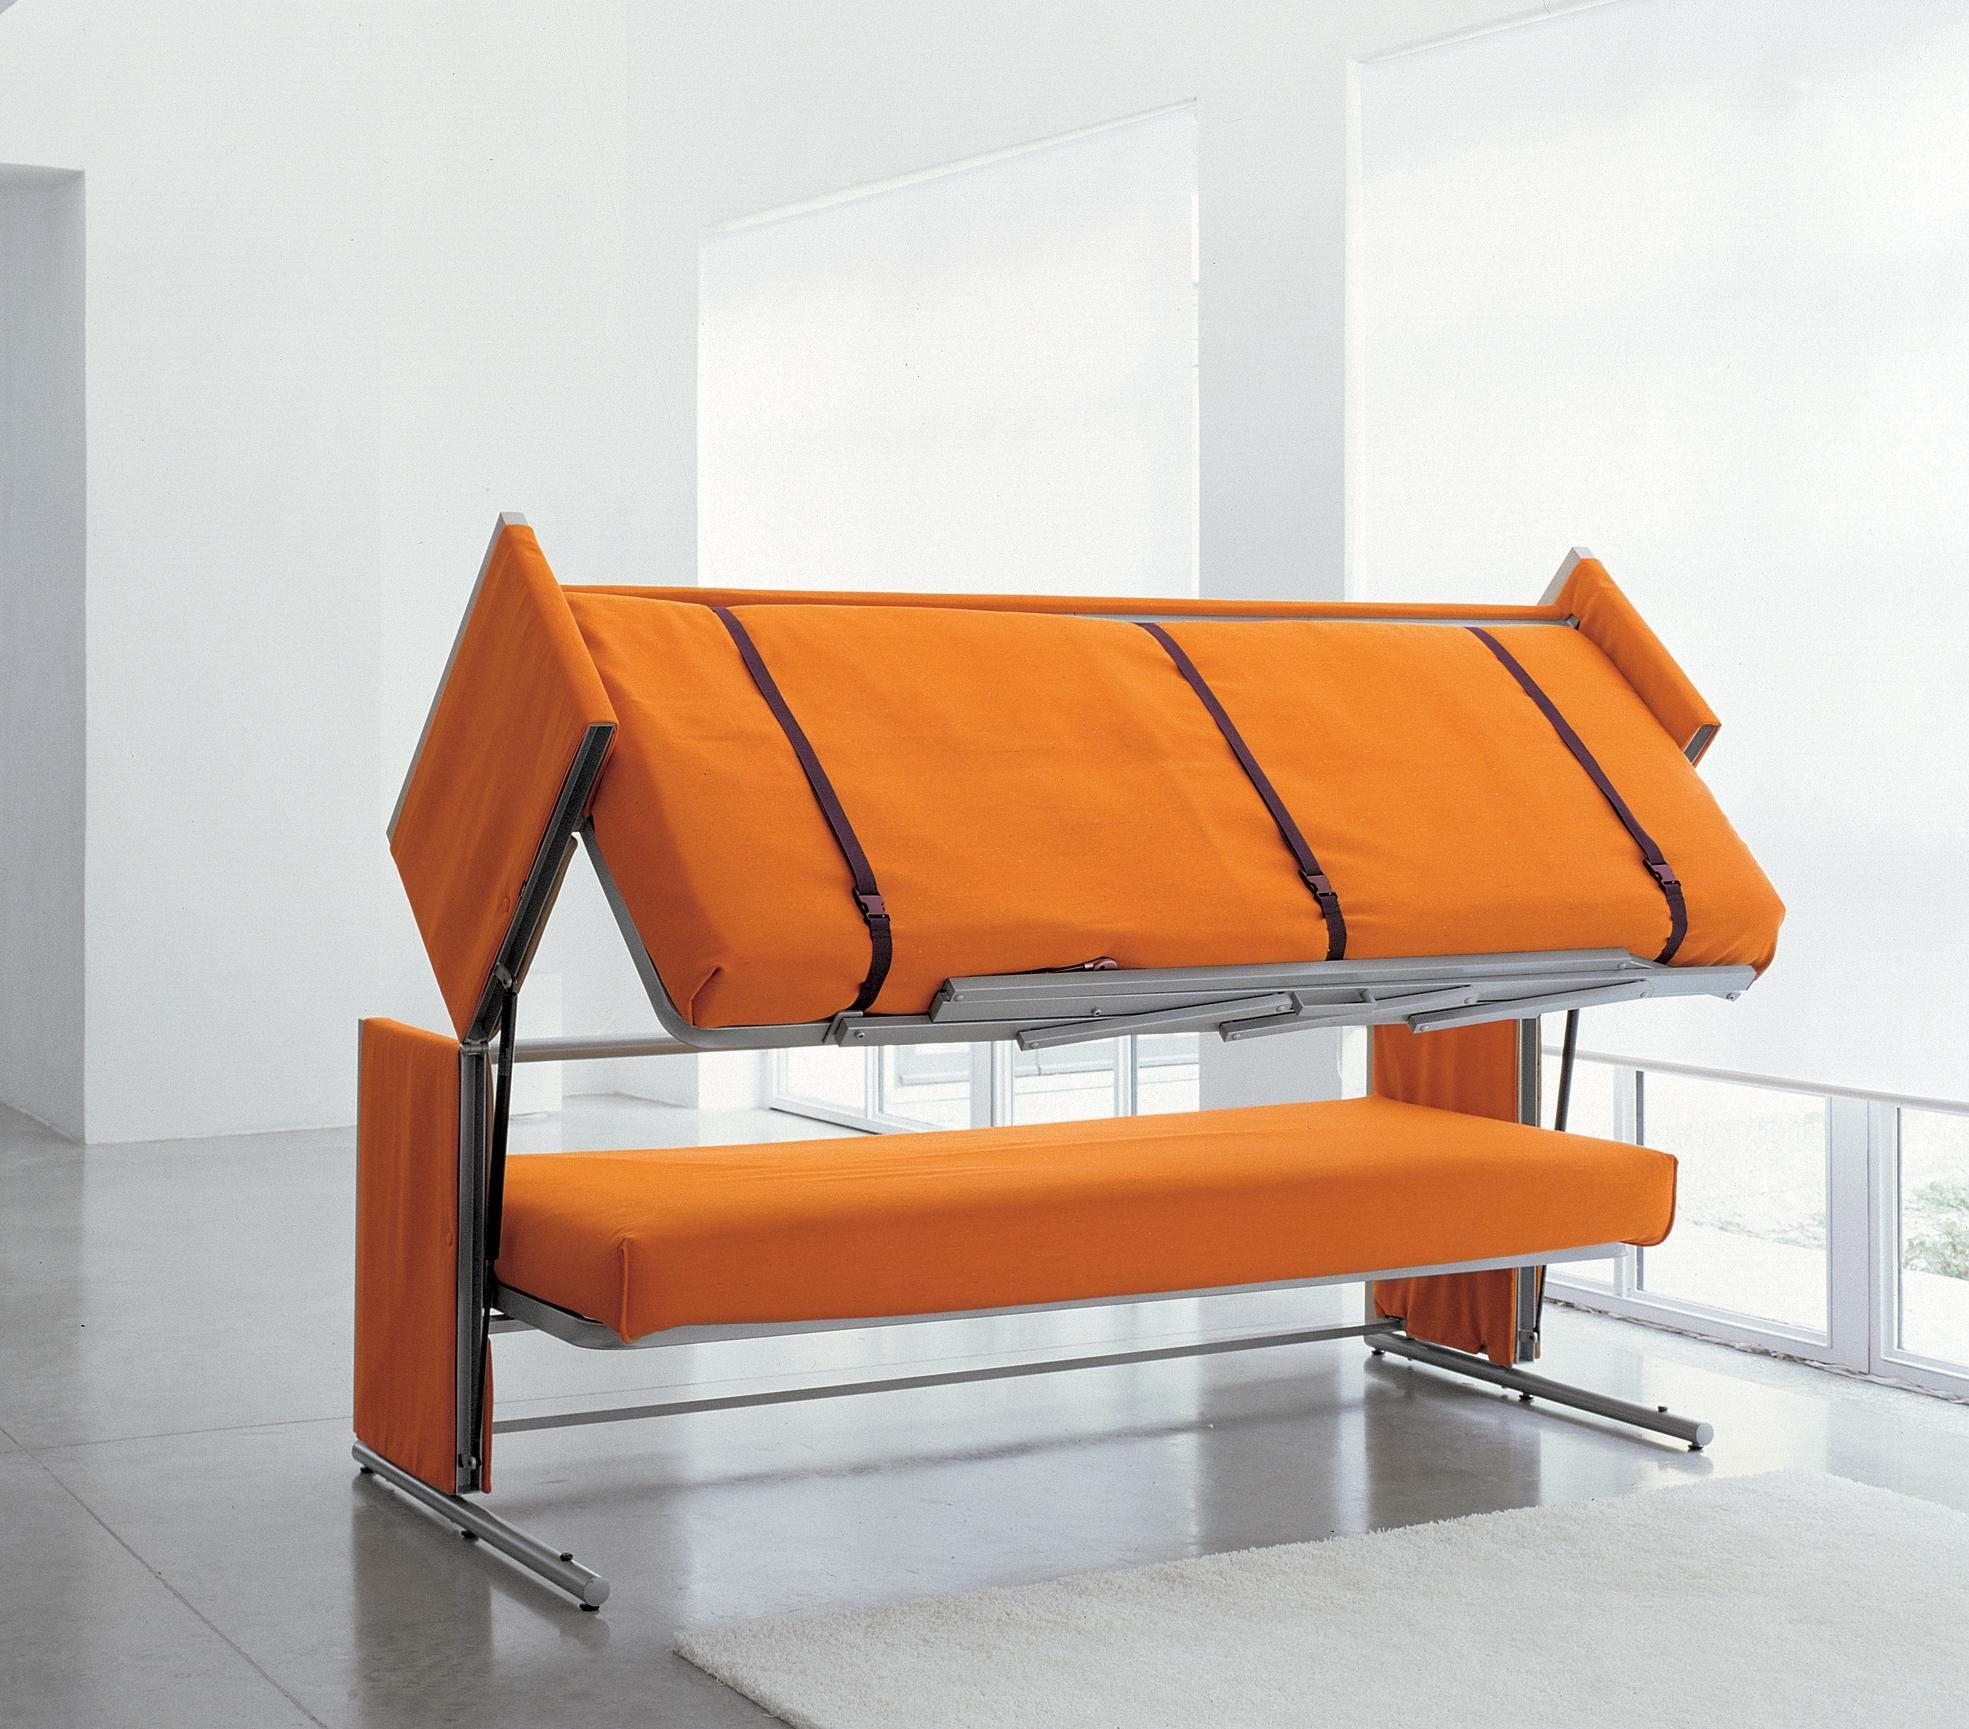 30 Creative Space-Saving Furniture Designs For Small Homes intended for Collapsible Sofas